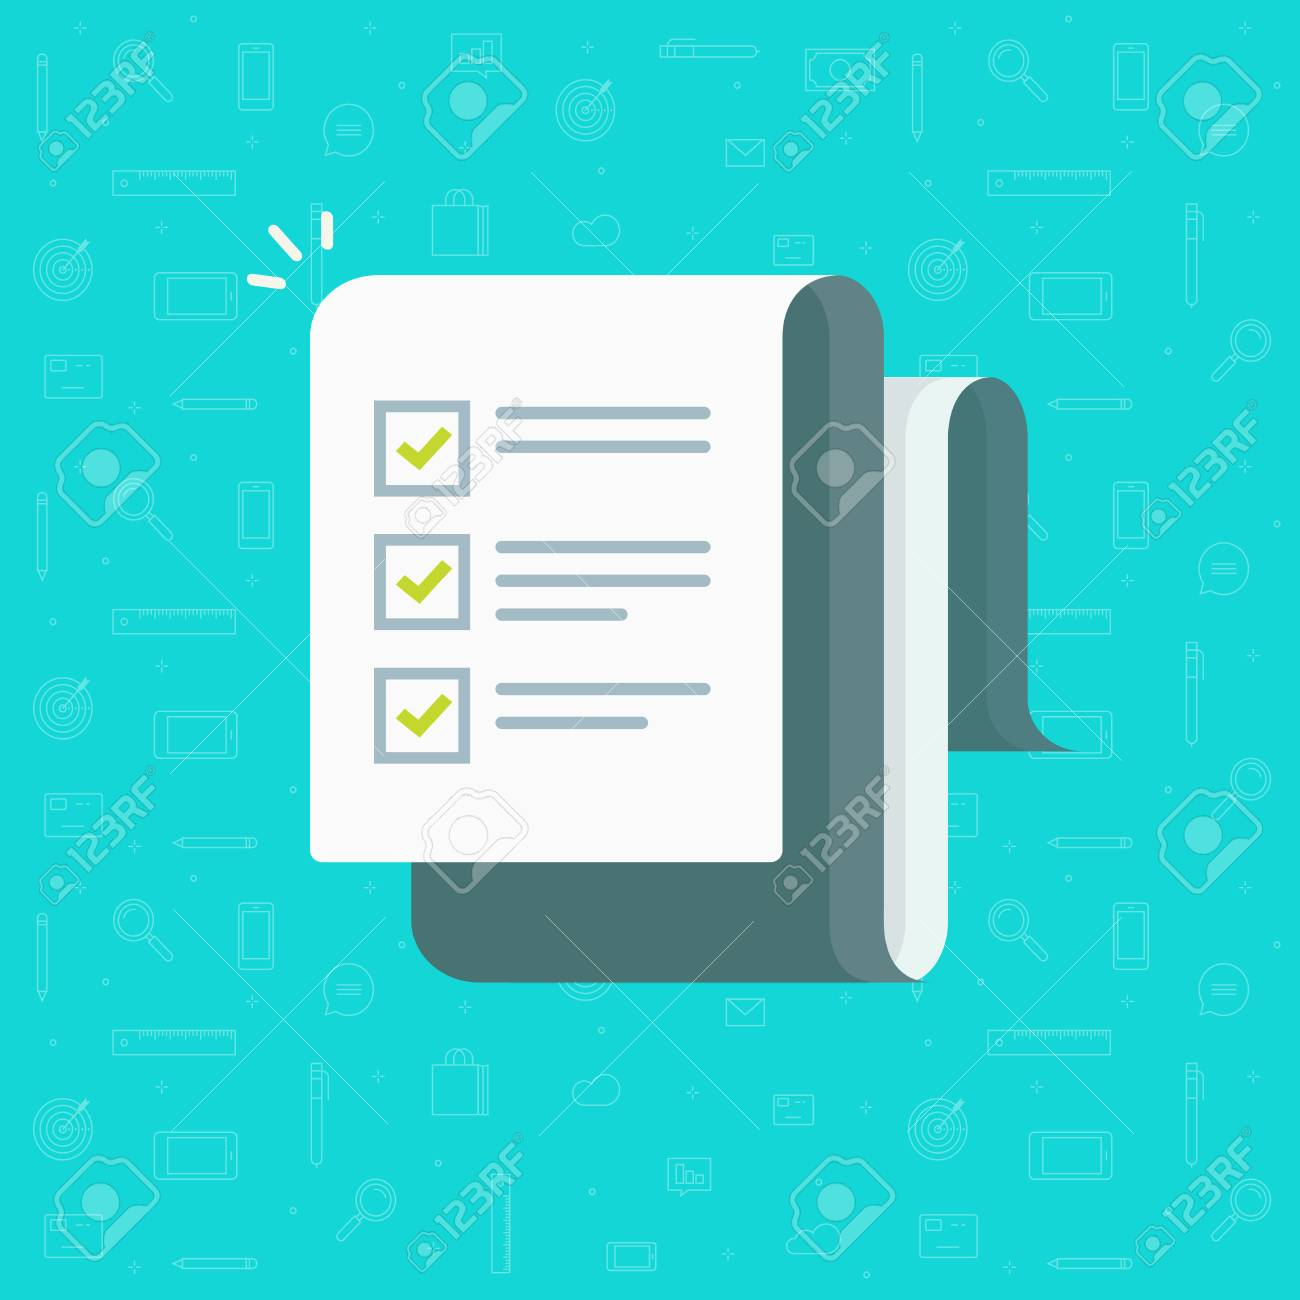 Checklist vector illustration, flat cartoon paper sheet with complete to do list checkmarks, idea of feedback report, success research, survey or questionnaire test form, assess or evaluation document - 96799233